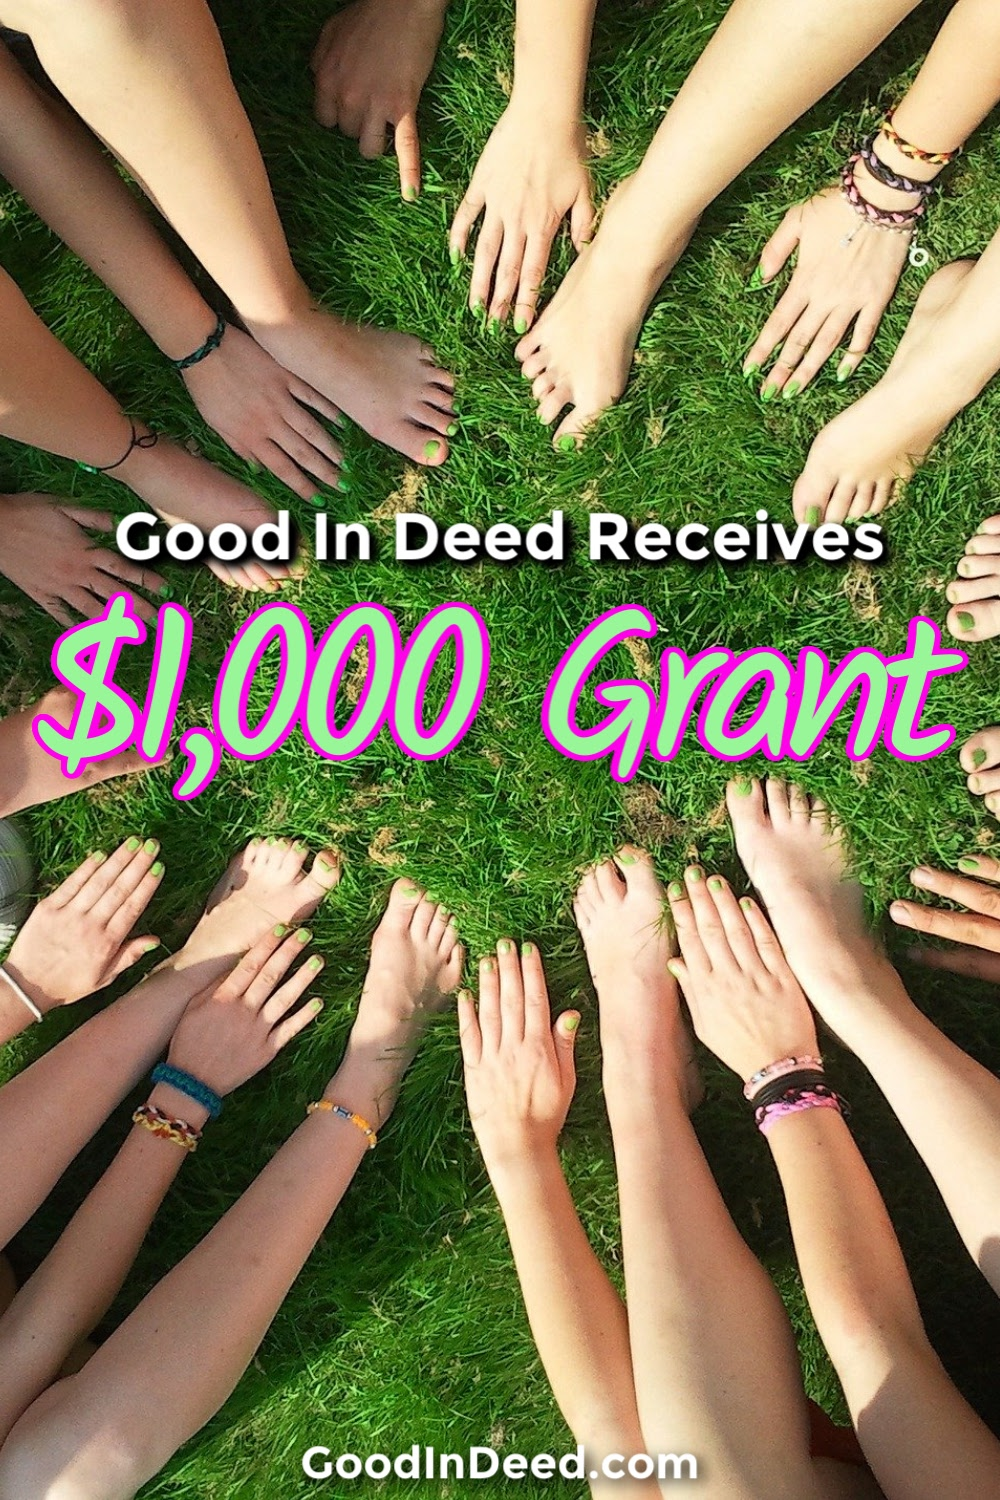 Good In Deed receives $1,000 grant from an anonymous donor and it shows just how charitable the Good In Deed community can be.